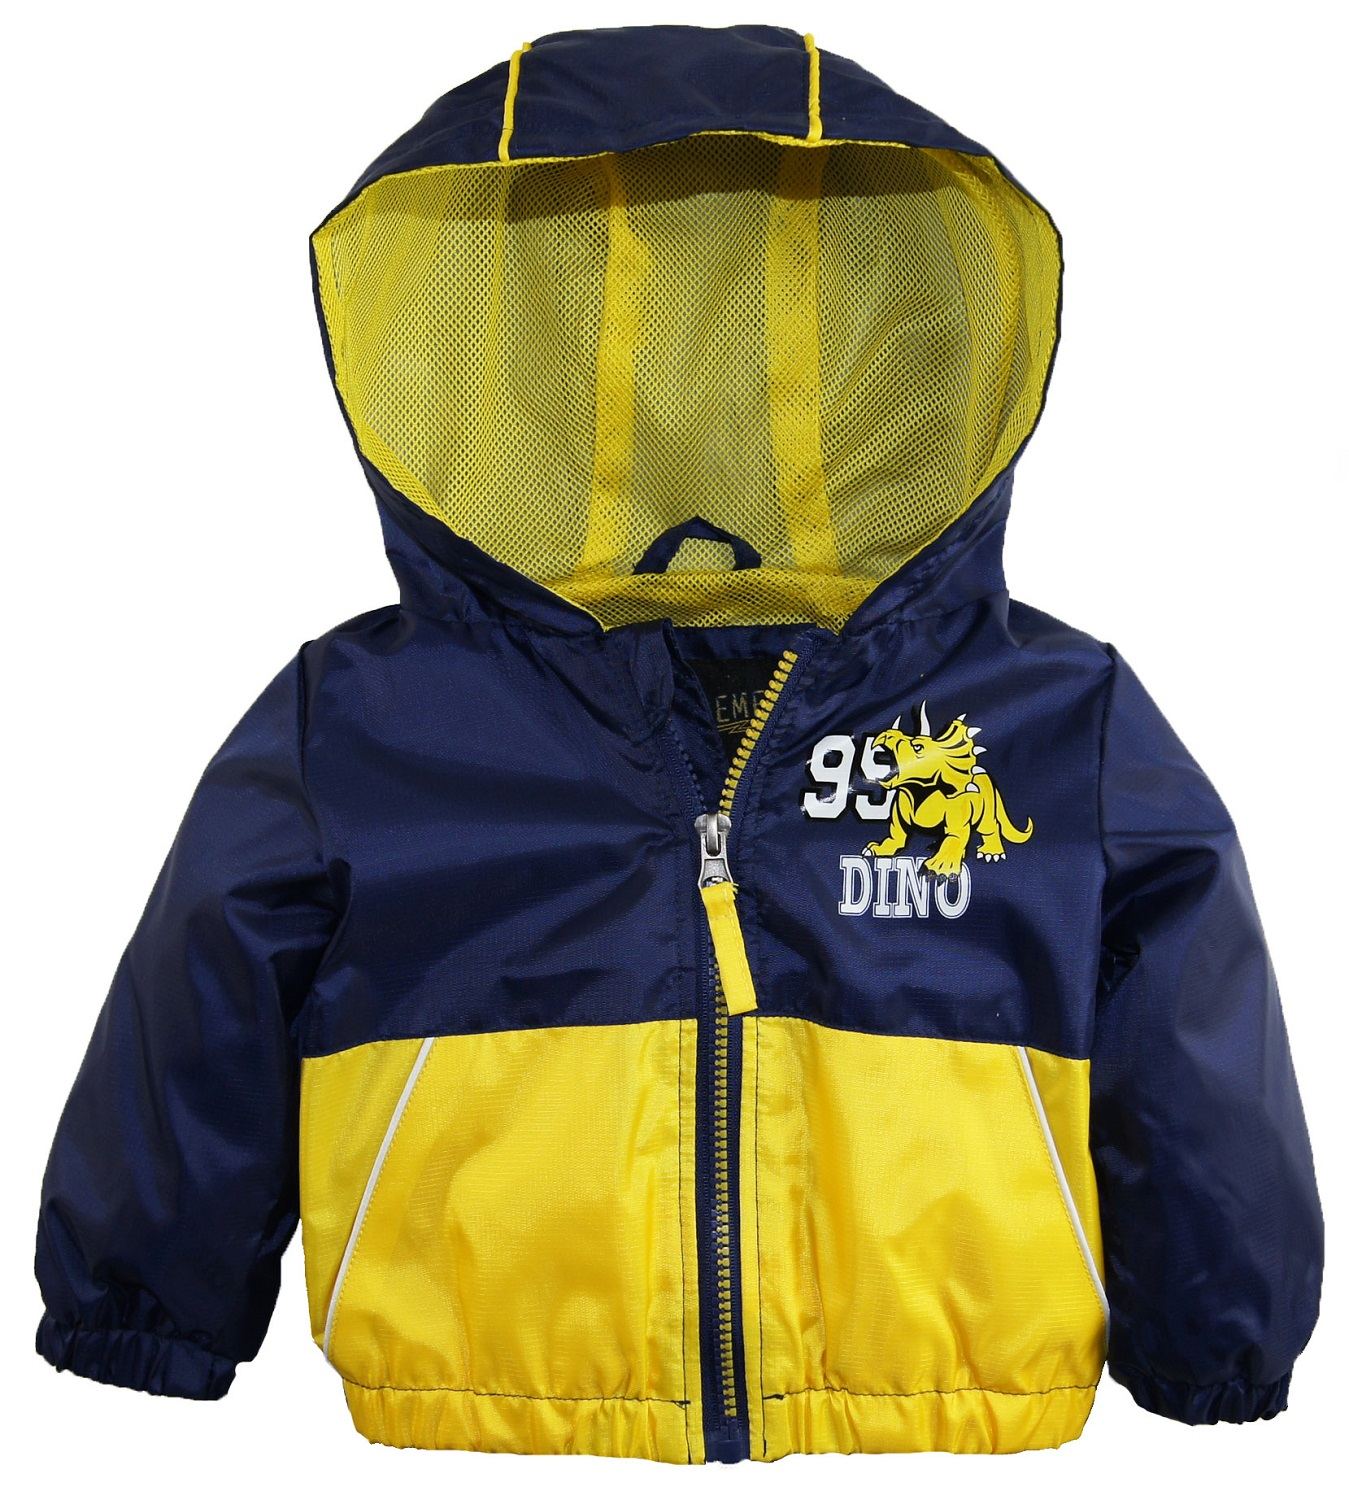 iXtreme Baby Boys' Hooded Colorblock Spring Jacket with Dino